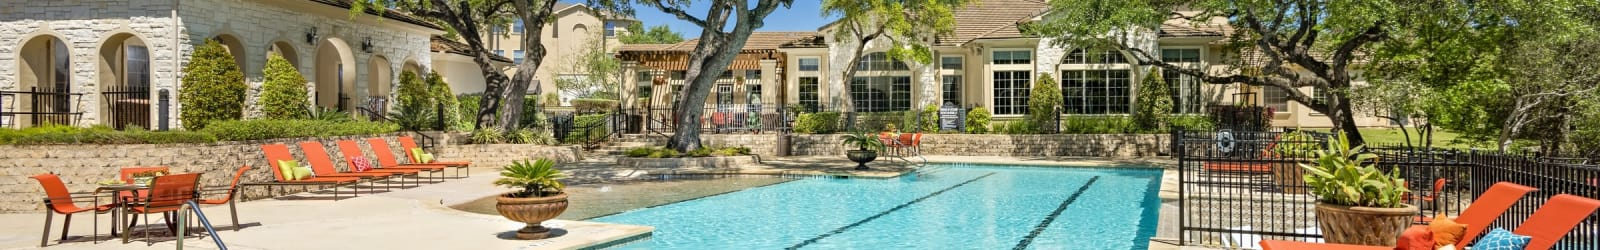 Amenities at Villas of Vista Del Norte in San Antonio, Texas